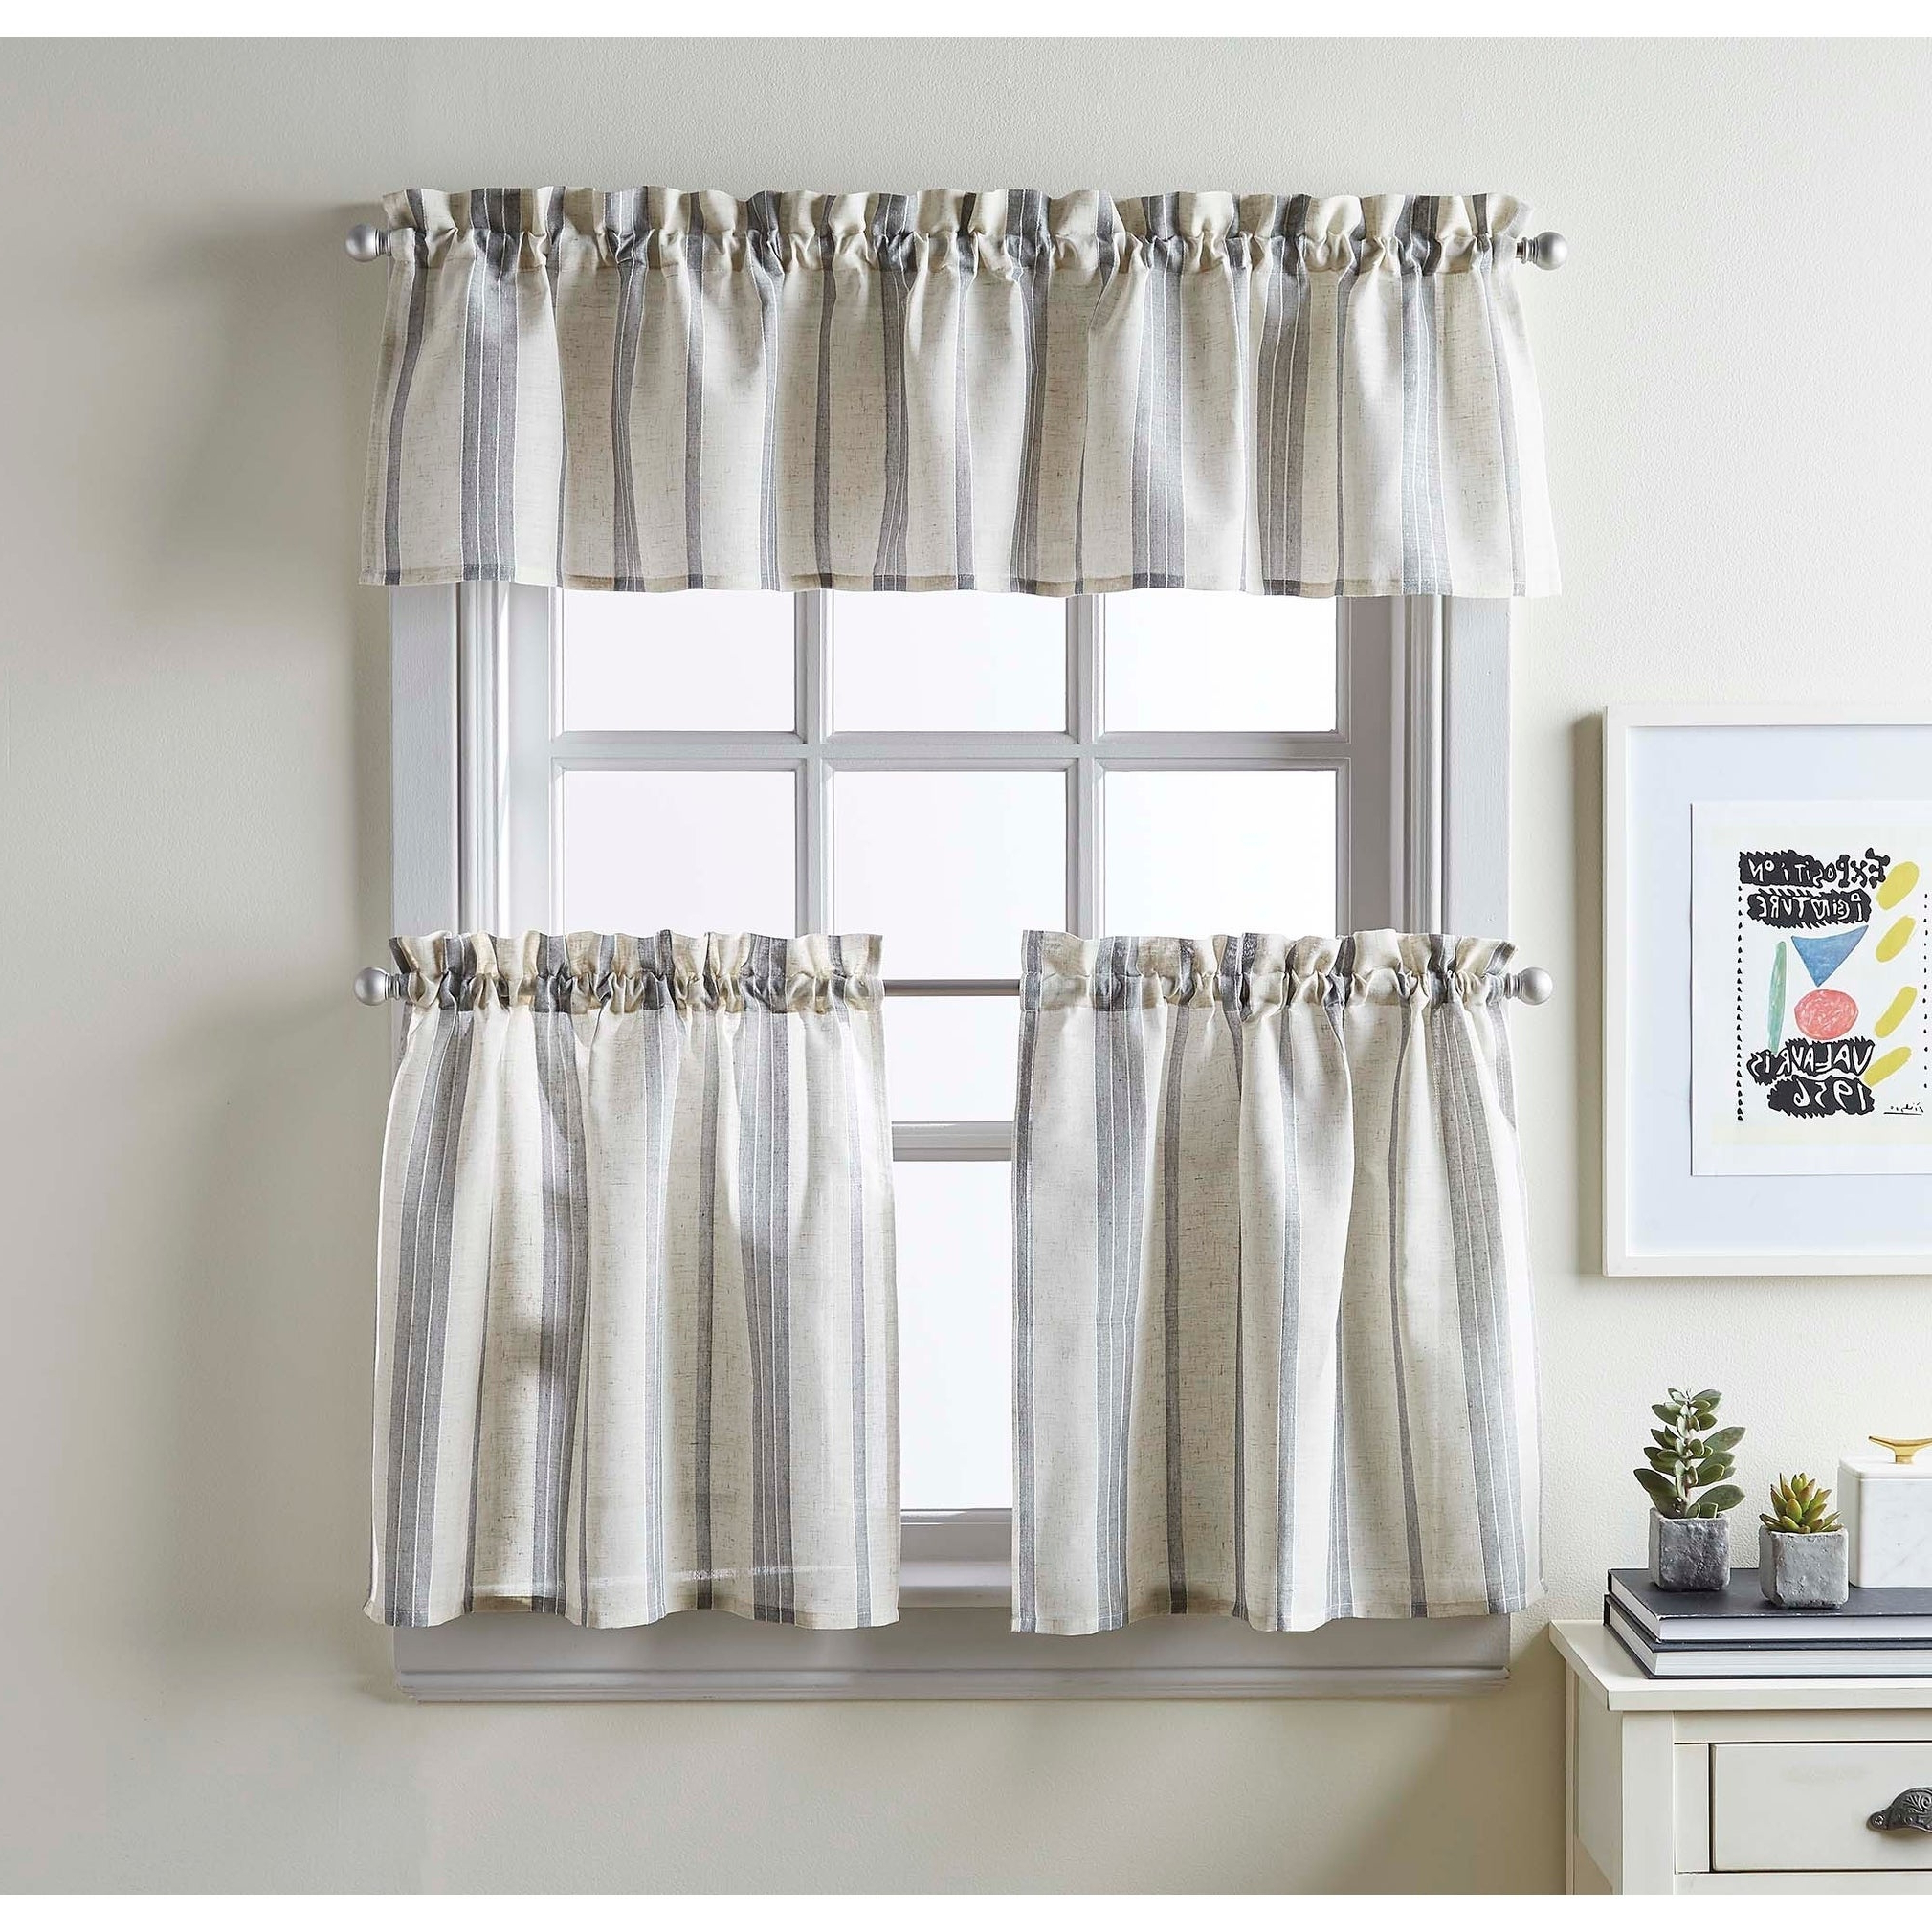 Popular Mckenzie Valance And Tier Pair Curtain Collection Pertaining To Lodge Plaid 3 Piece Kitchen Curtain Tier And Valance Sets (View 10 of 20)